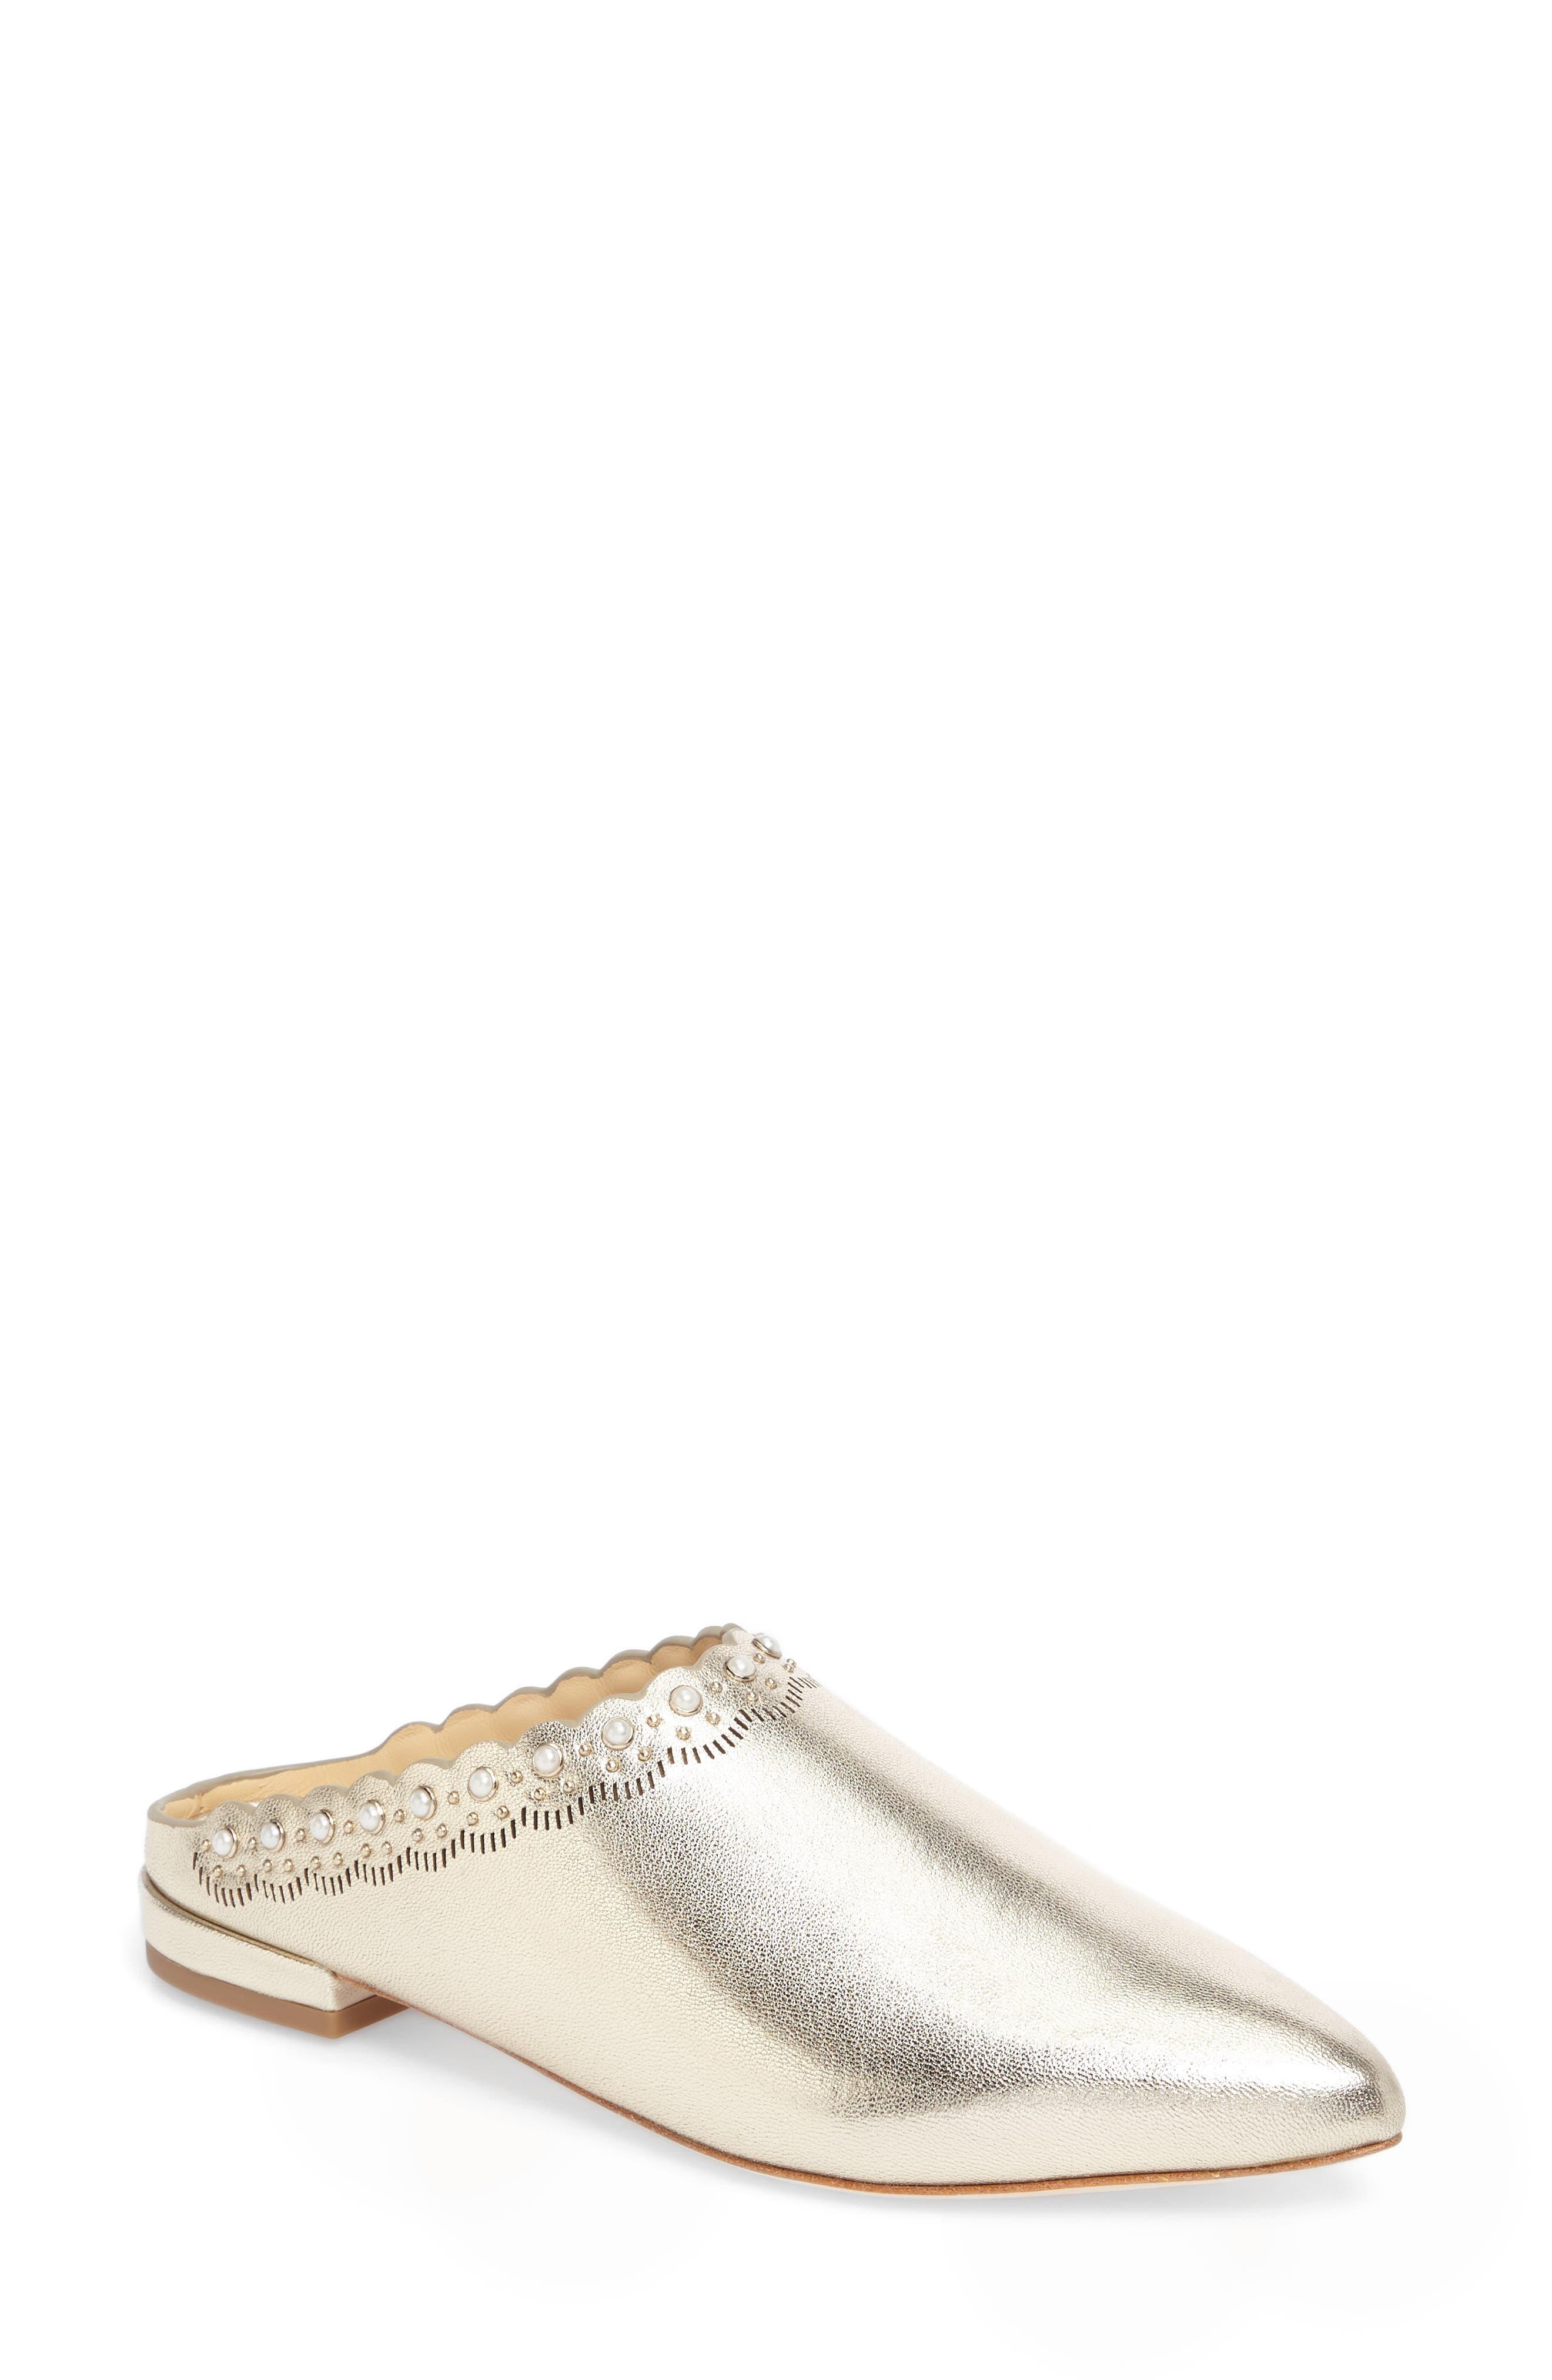 Giselle Mule,                         Main,                         color, Champagne Leather